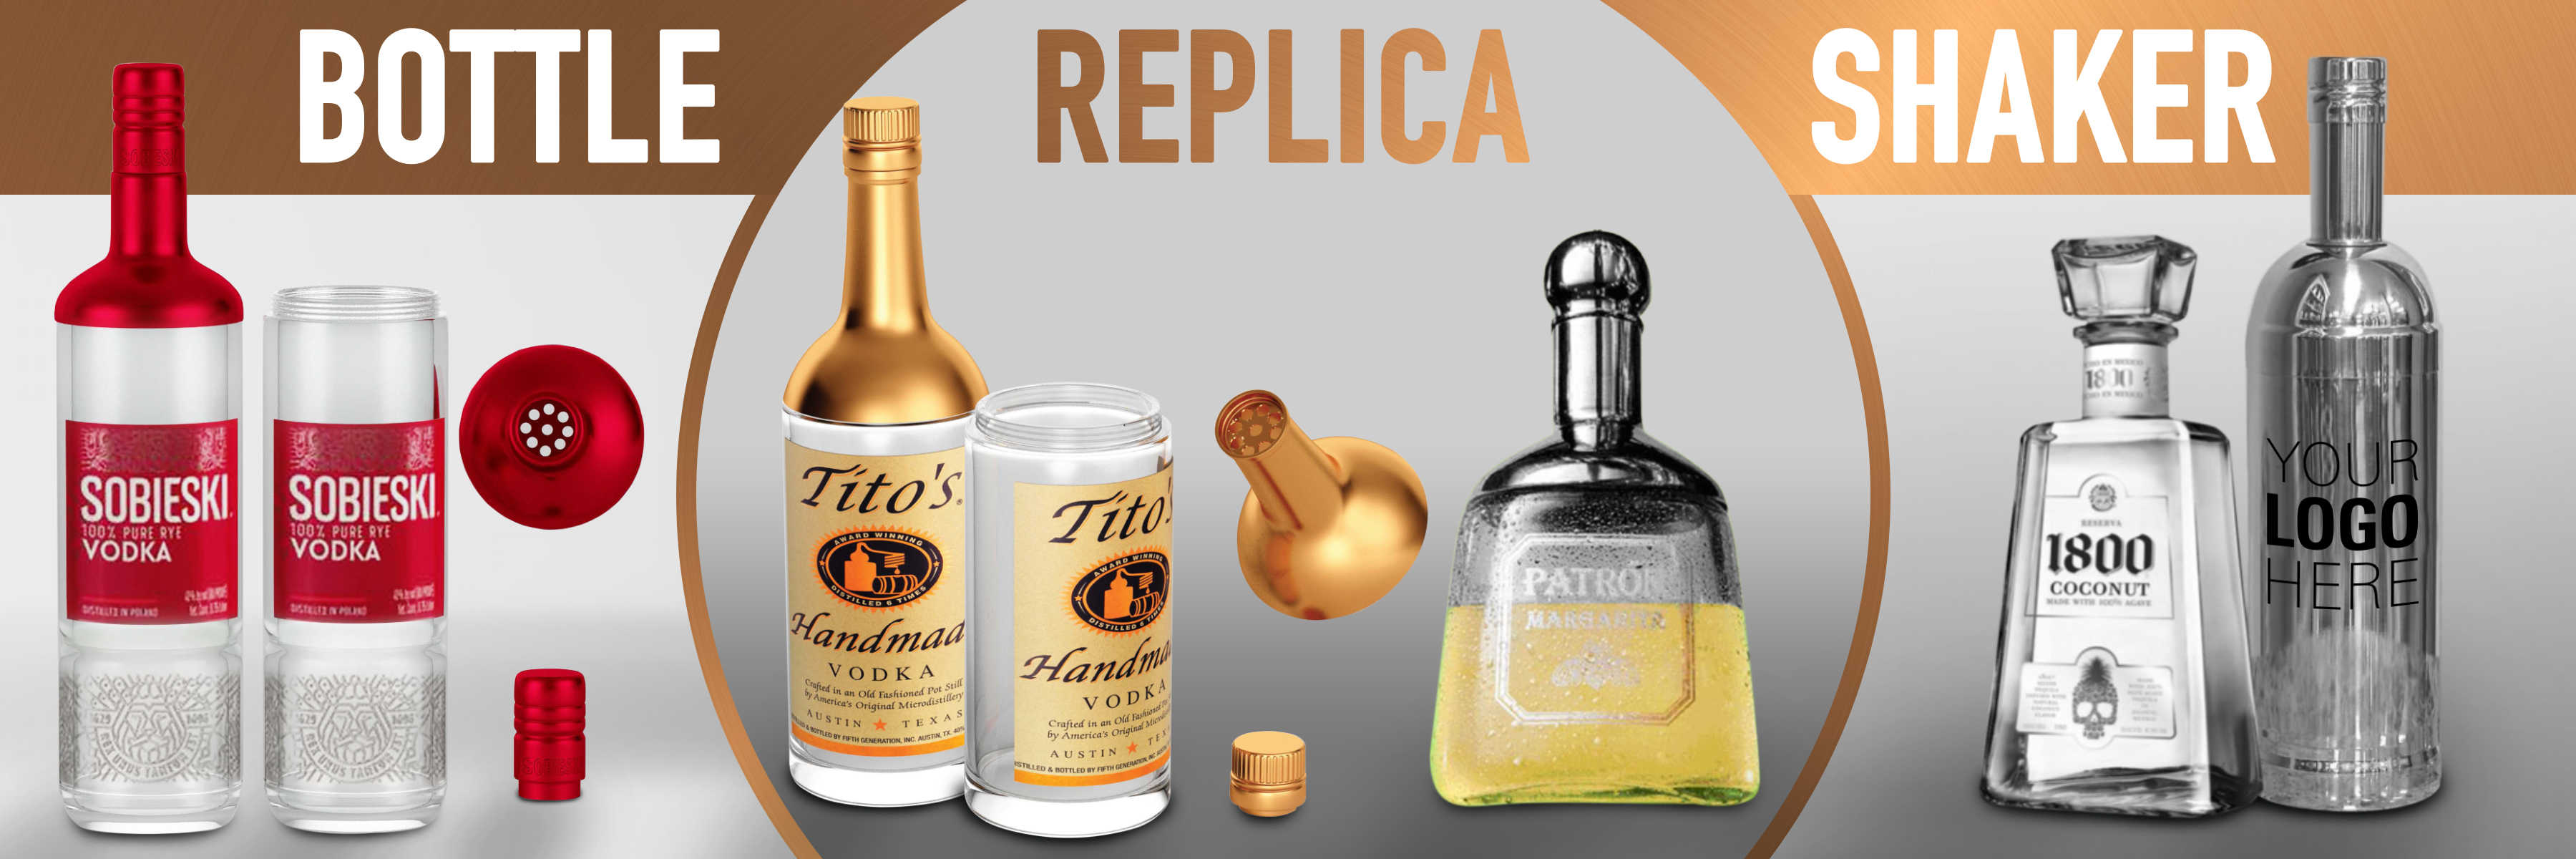 replica bottle shakers